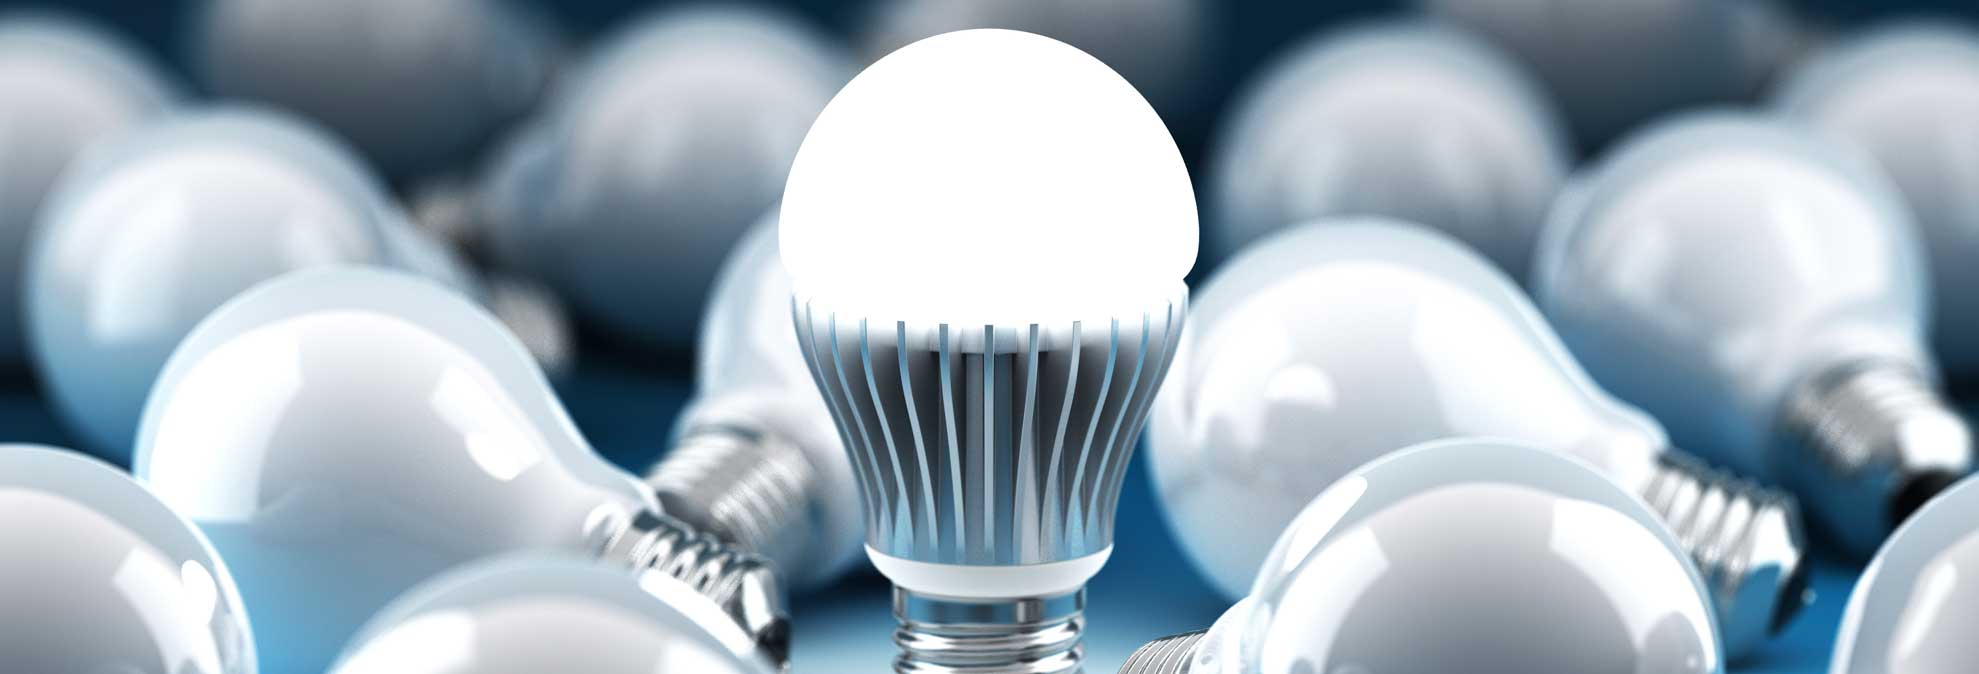 Best Lightbulb Buying Guide - Consumer Reports